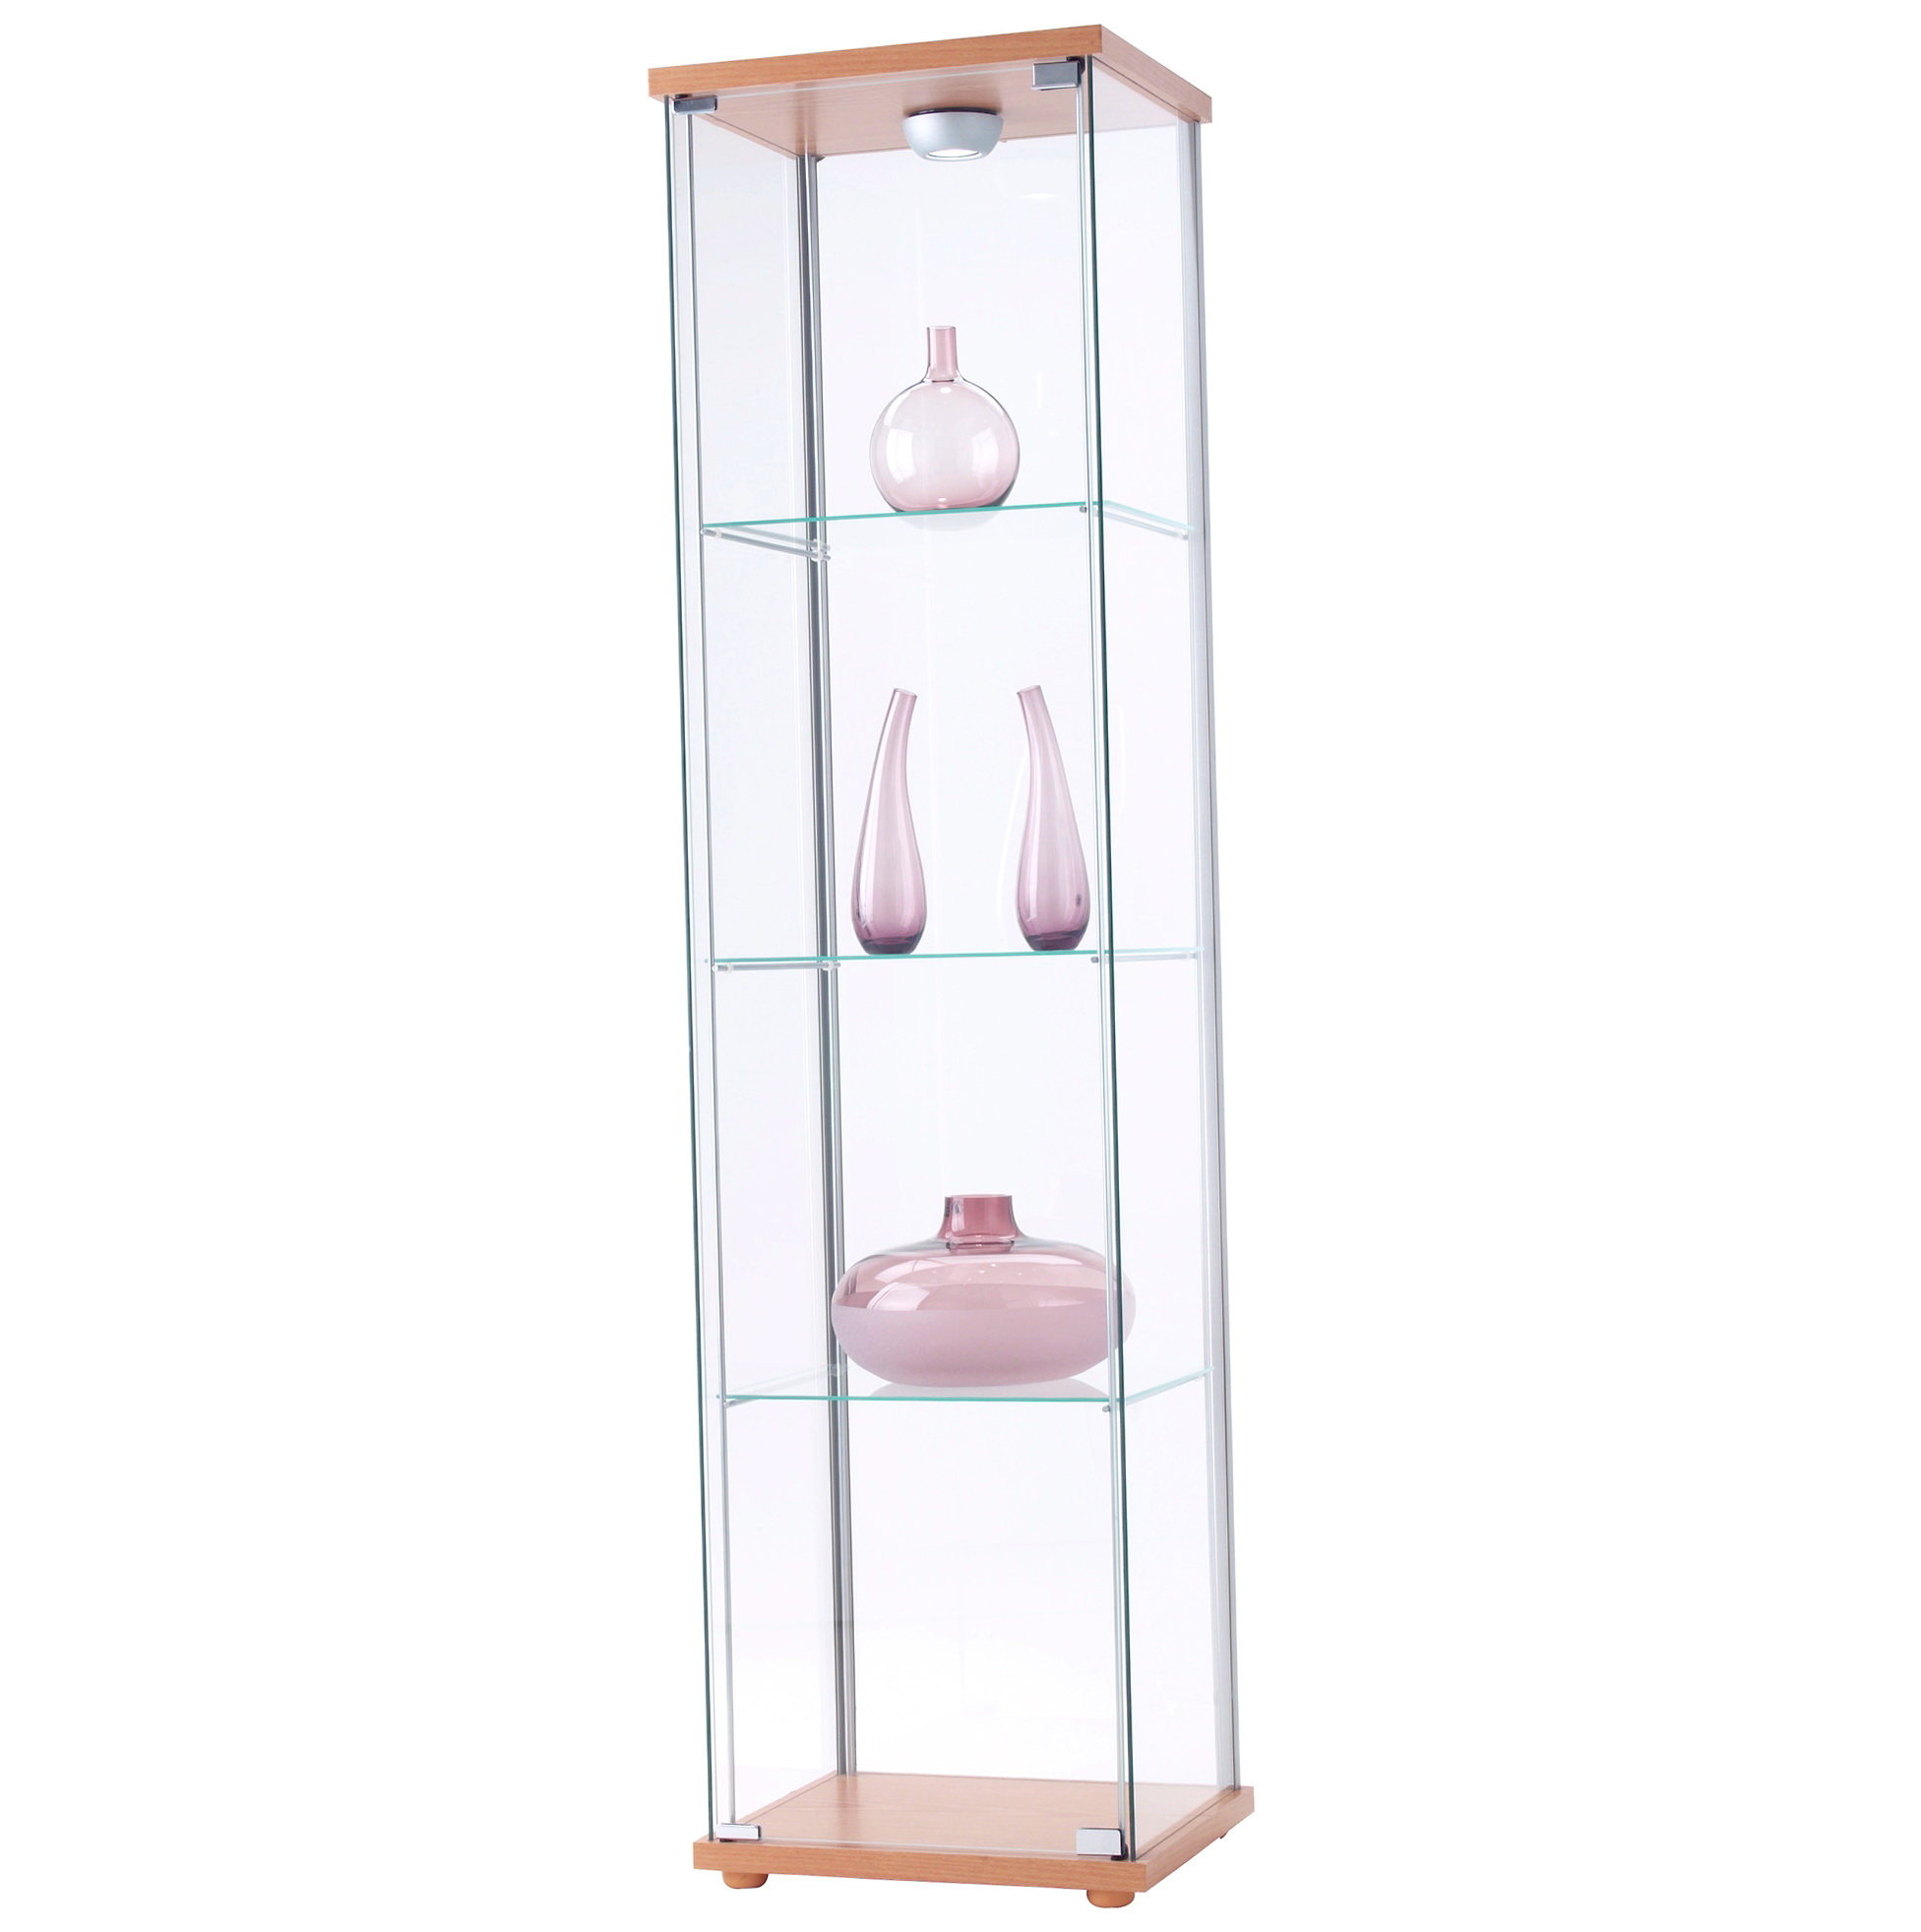 Glass Display Cabinets Perth Glass Display Cabinet Ikea Cabinet 38043 Home Design